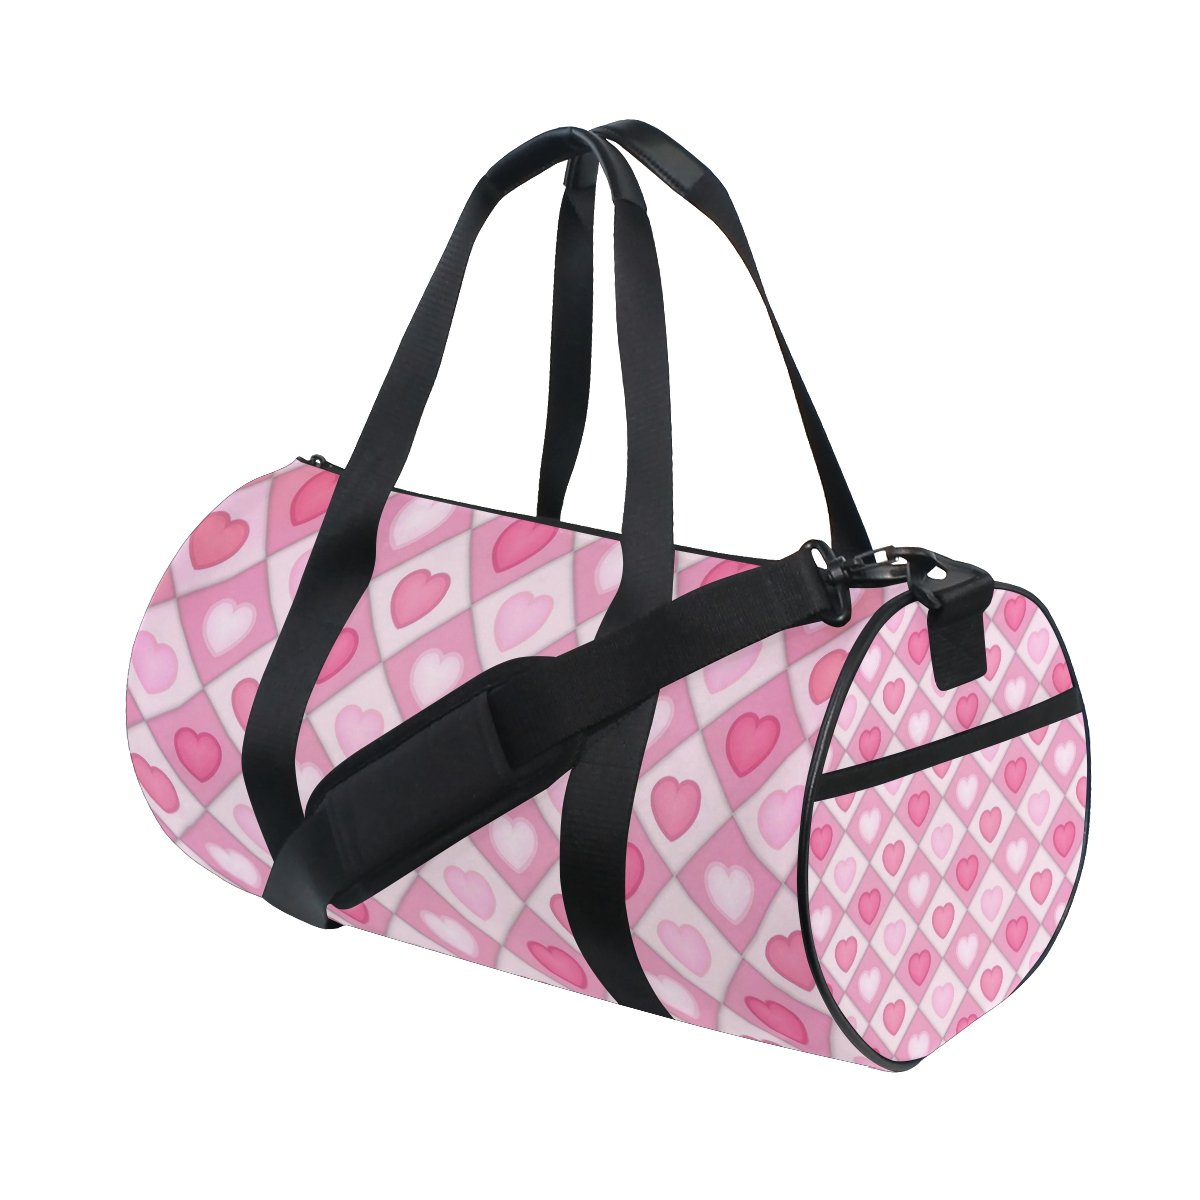 Pink and White Hearts Lightweight Canvas Sports Bag Travel Duffel Yoga Gym Bags